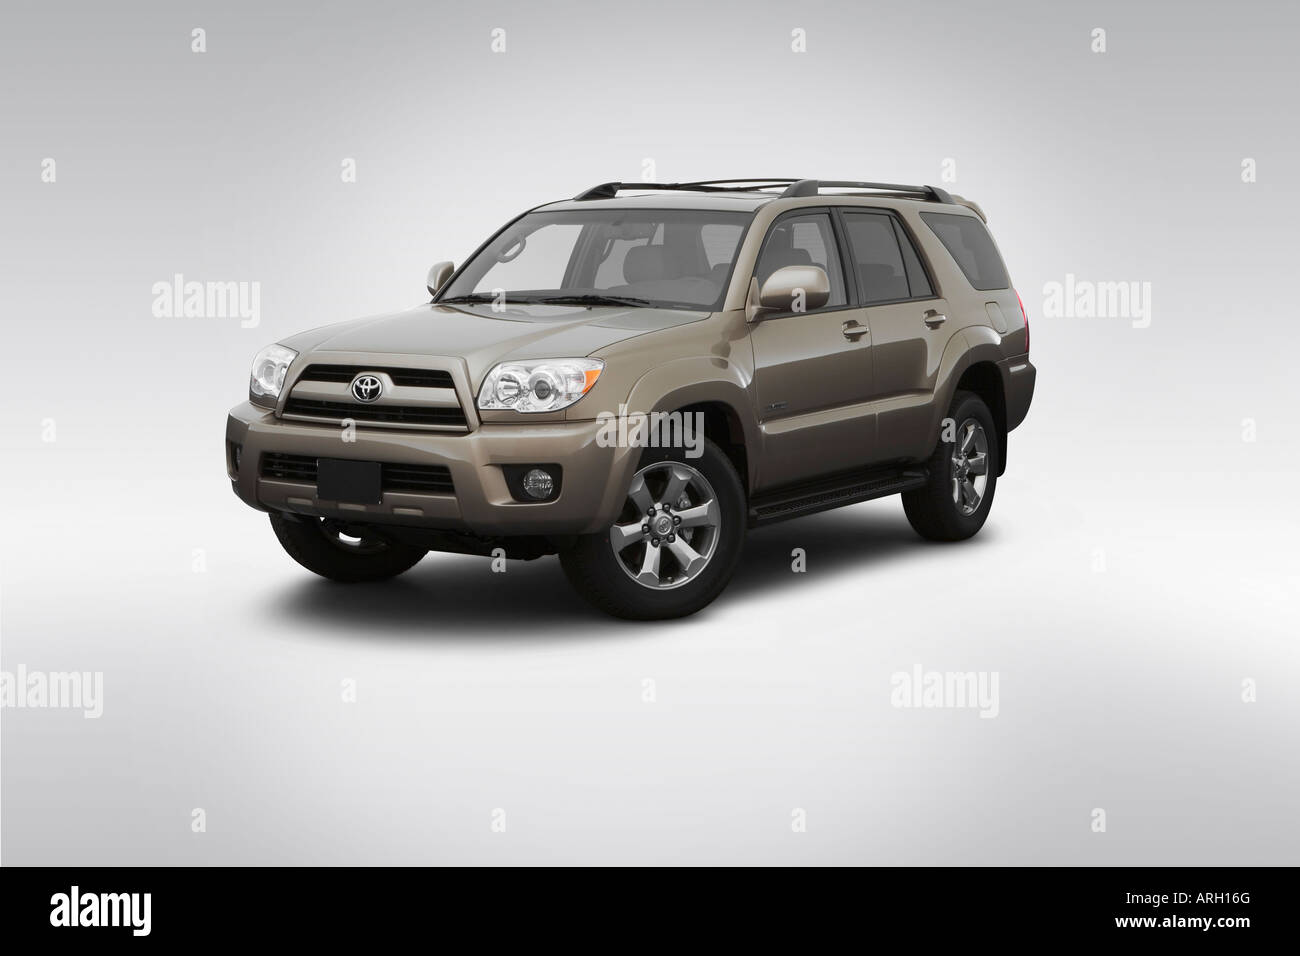 2007 Toyota 4runner Limited In Brown Front Angle View Stock Photo Alamy